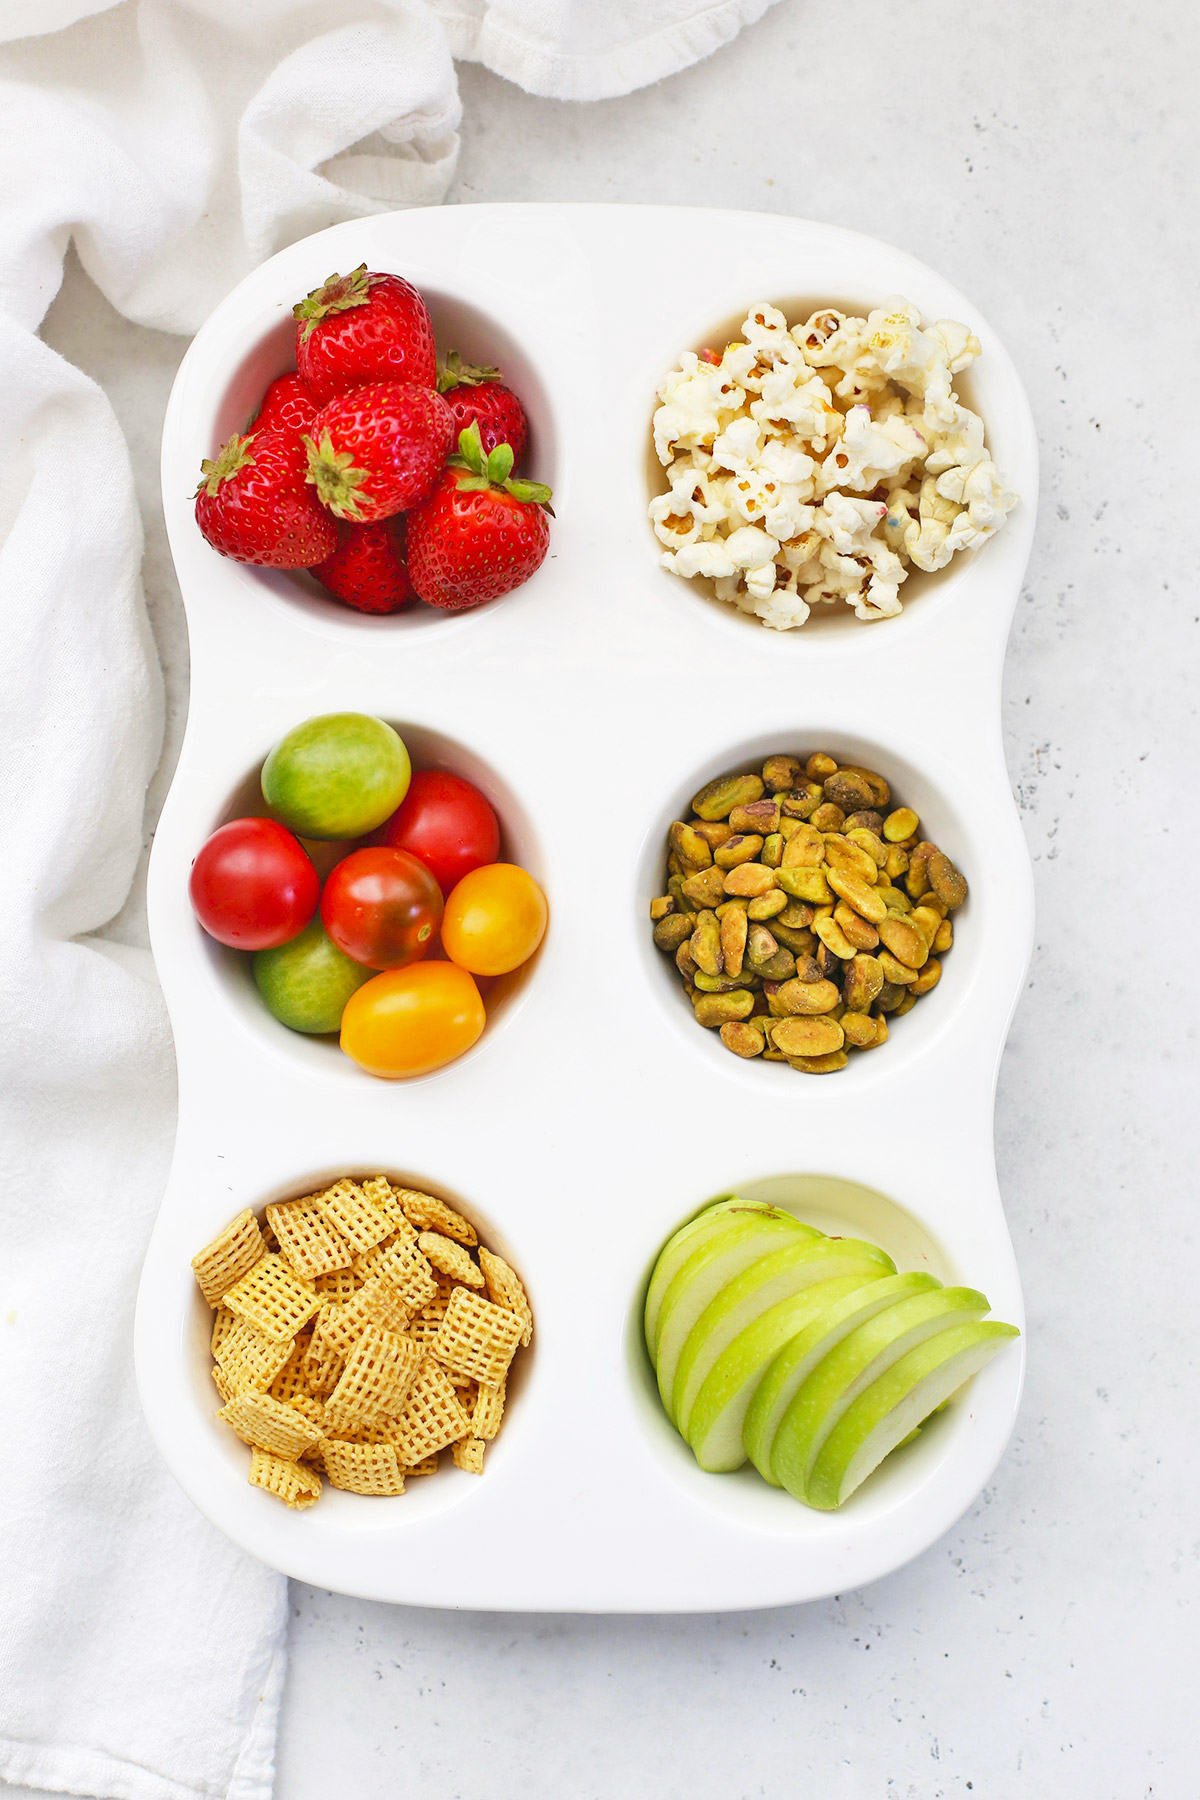 Muffin Tin Snack Tray For Kids with Strawberries, Popcorn, Grape Tomatoes, Pistachios, Gluten-Free Cereal, and Green Apple Slices